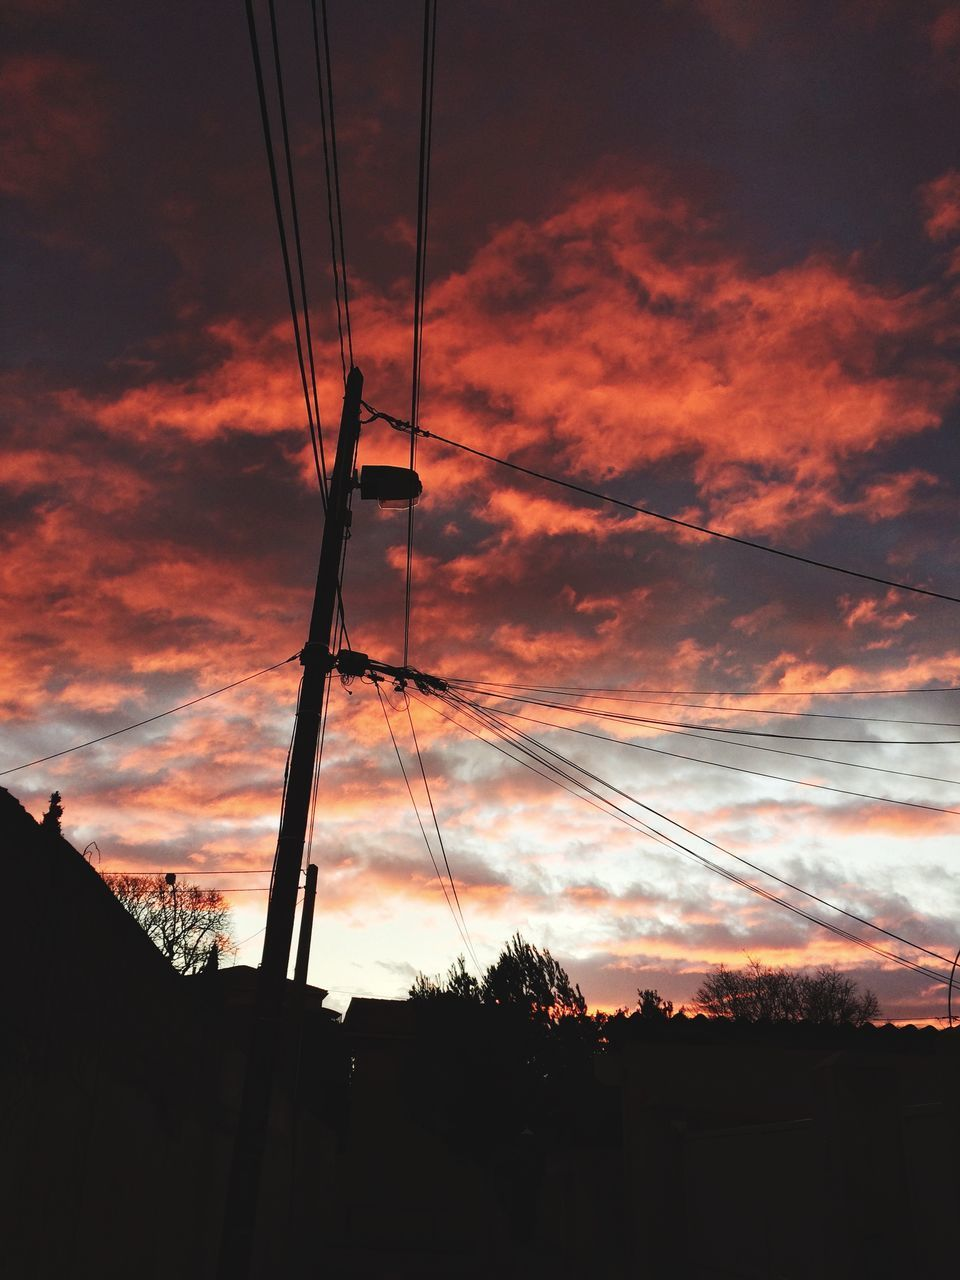 sky, sunset, silhouette, cloud - sky, cable, no people, architecture, electricity, power line, low angle view, orange color, nature, built structure, connection, electricity pylon, beauty in nature, power supply, technology, building exterior, dusk, outdoors, complexity, telephone line